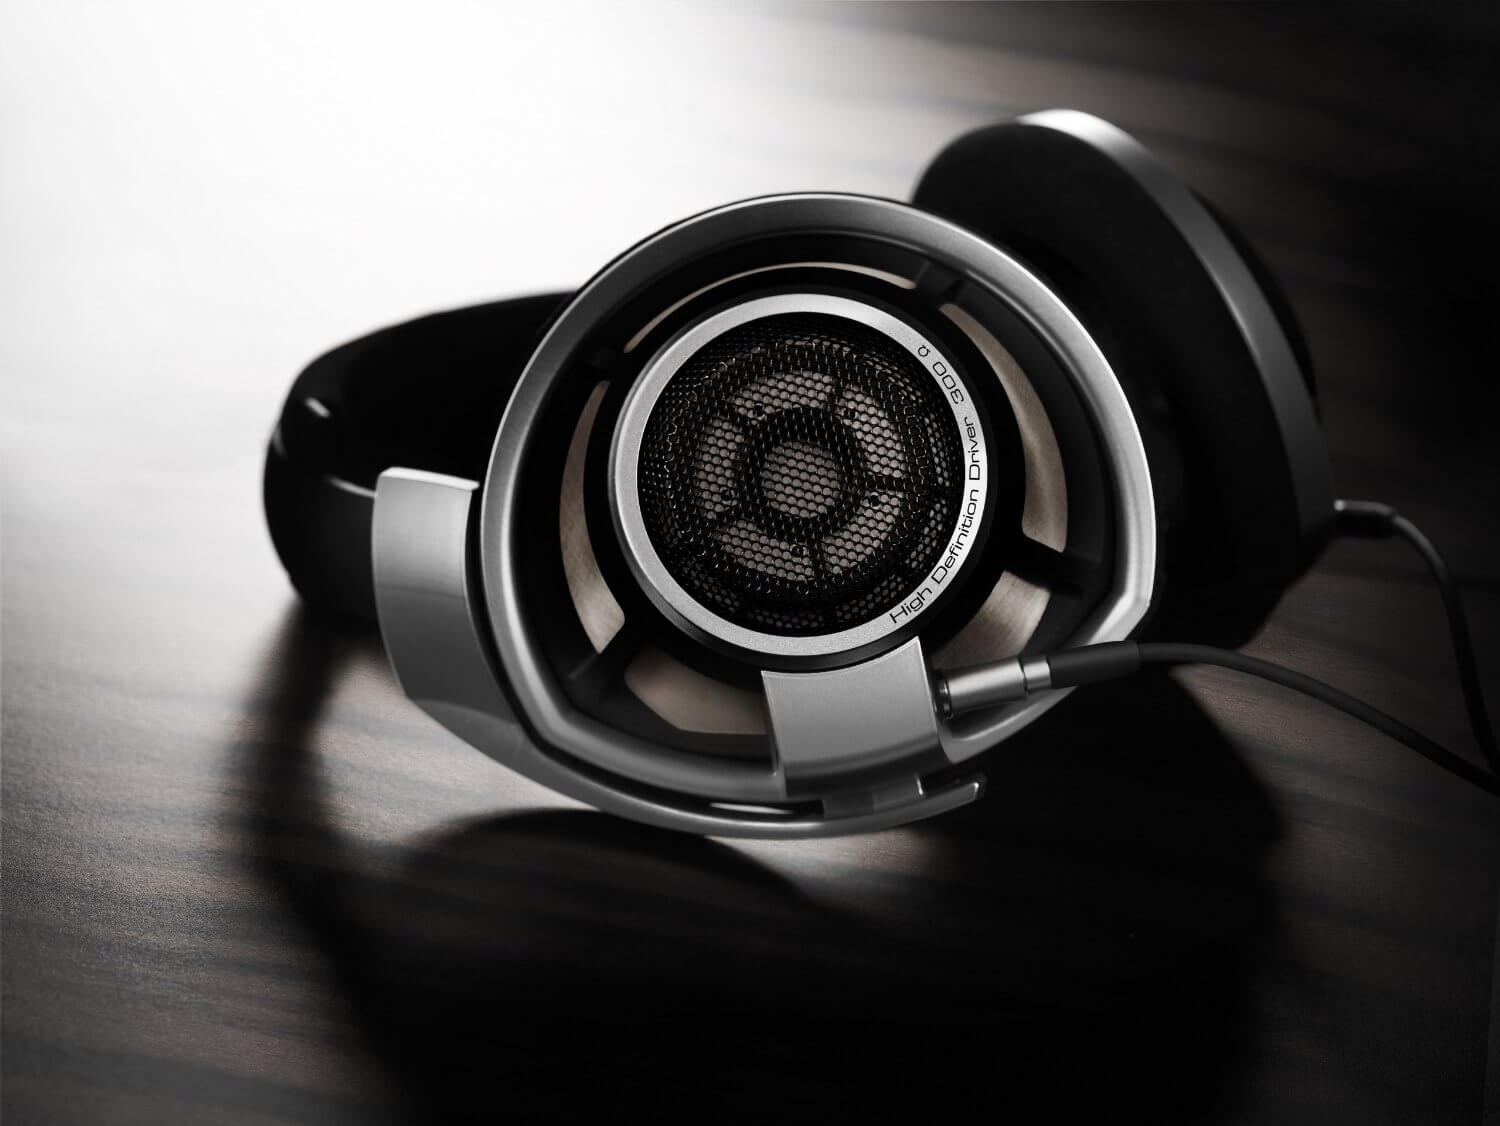 Sennheiser's headphone software had a serious security flaw that could compromise your entire web browsing